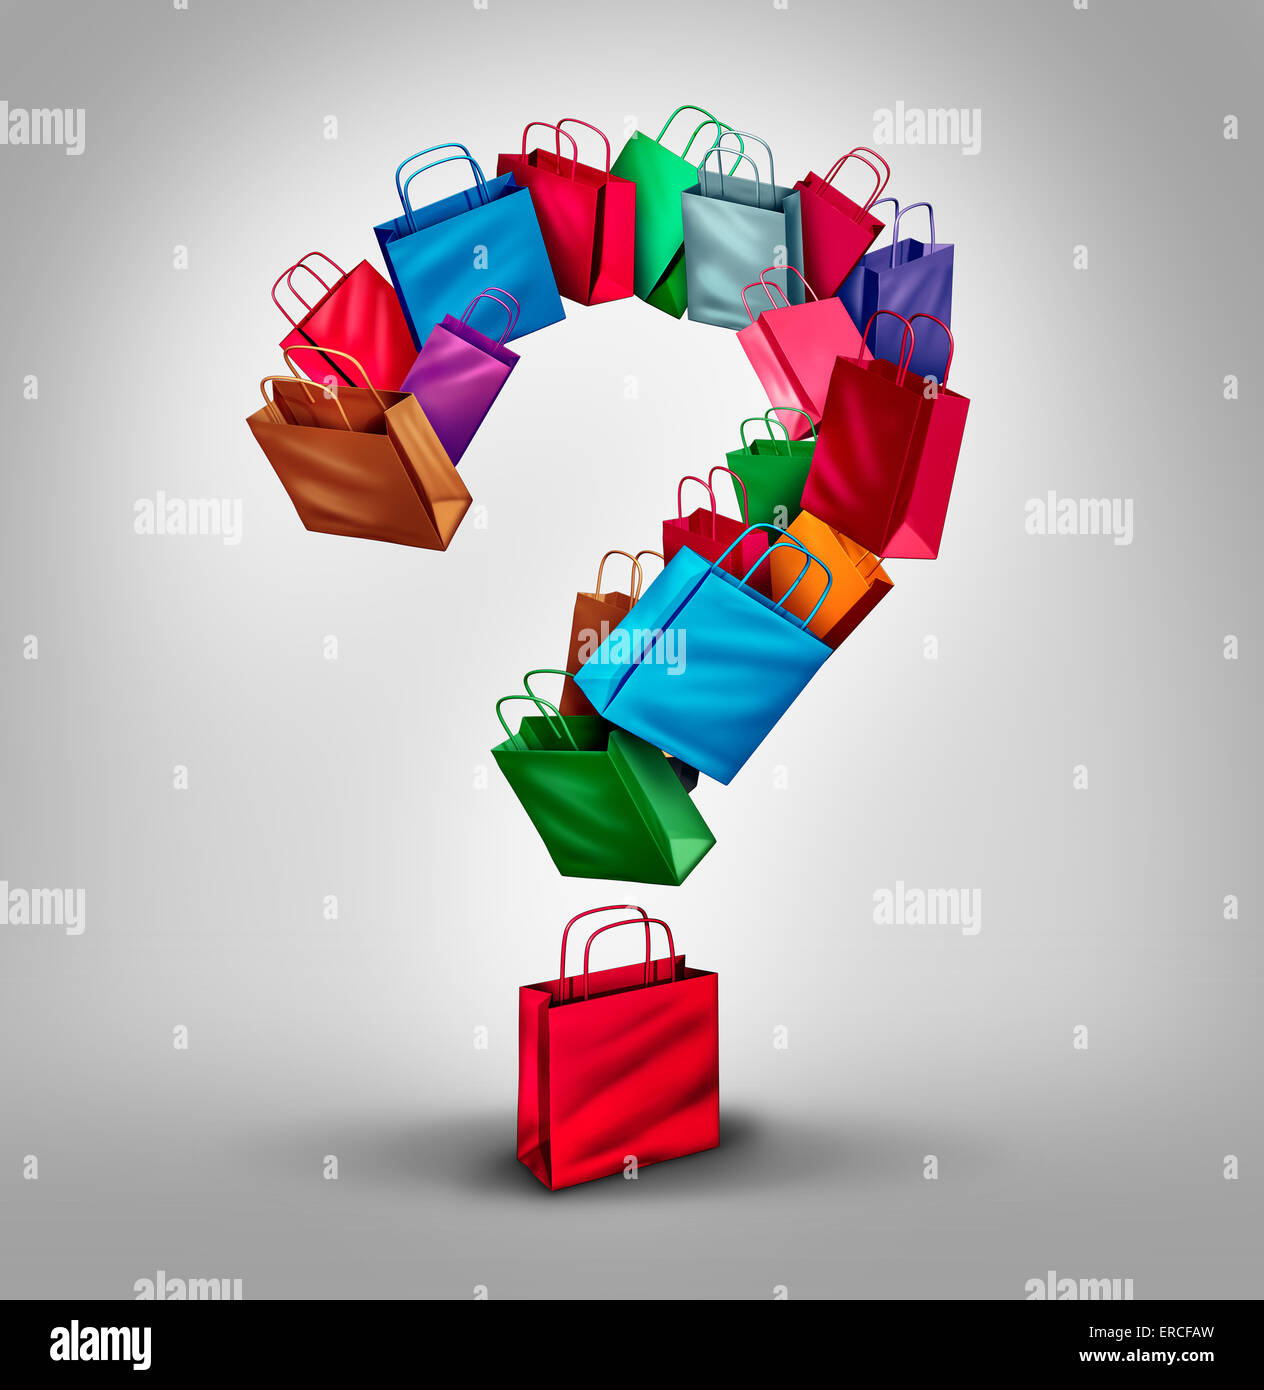 Shopping questions concept as a group of retail store bags shaped as a three dimensional question mark as a symbol - Stock Image